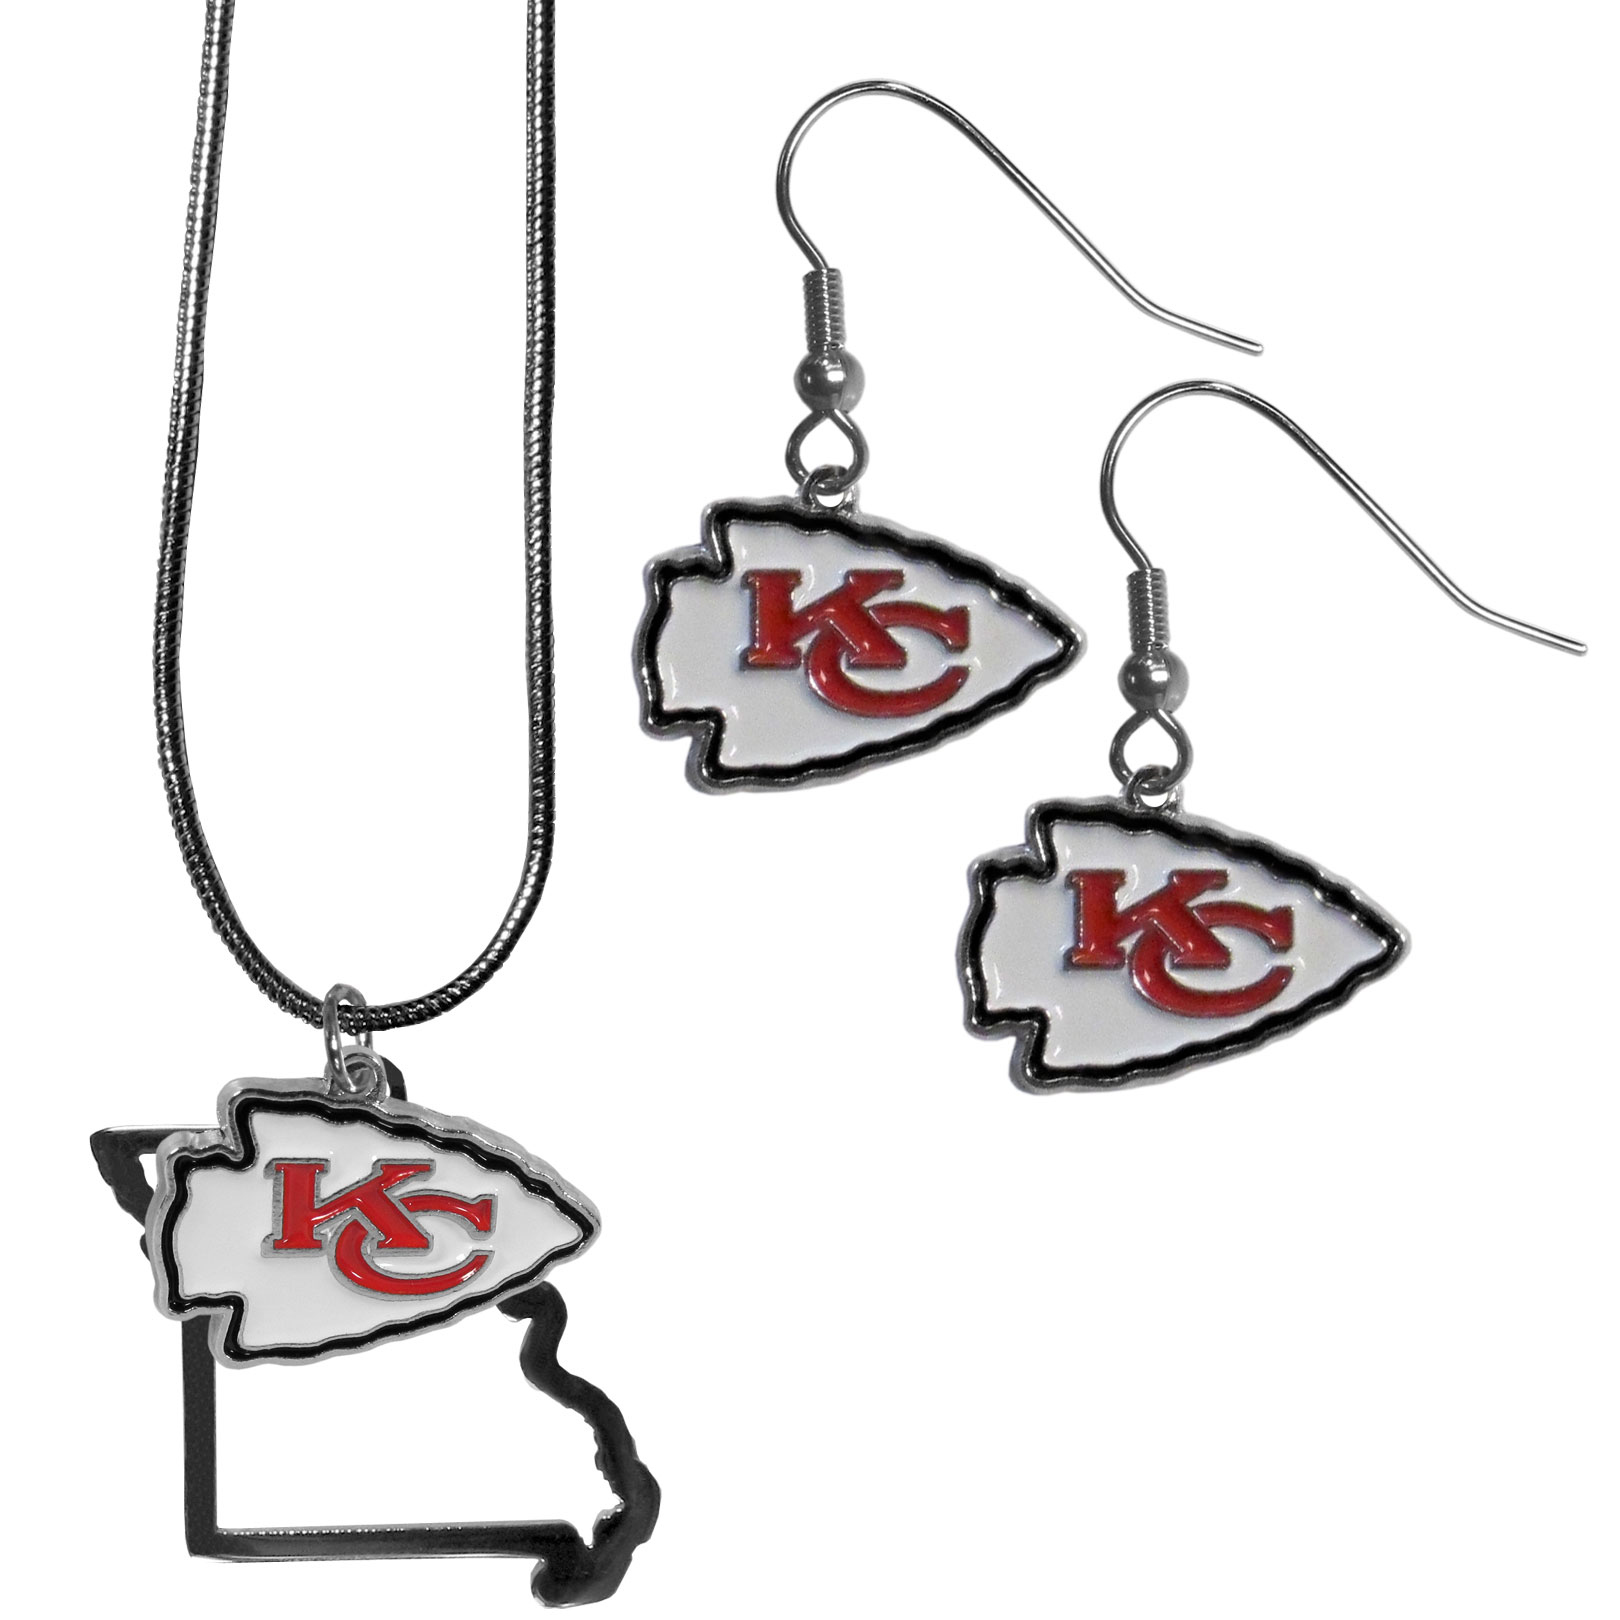 Kansas City Chiefs Dangle Earrings and State Necklace Set - Get in on the trend! State themes are a trend that just keeps getting more popular and this jewelry set takes the state style and give it a sporty twist with a Kansas City Chiefs necklace that features an Arizona state outline charm paired with a beautiful team charm and matching team charm dangle earrings. The earrings feature hypoallergenic fishhook posts that are nickel free.